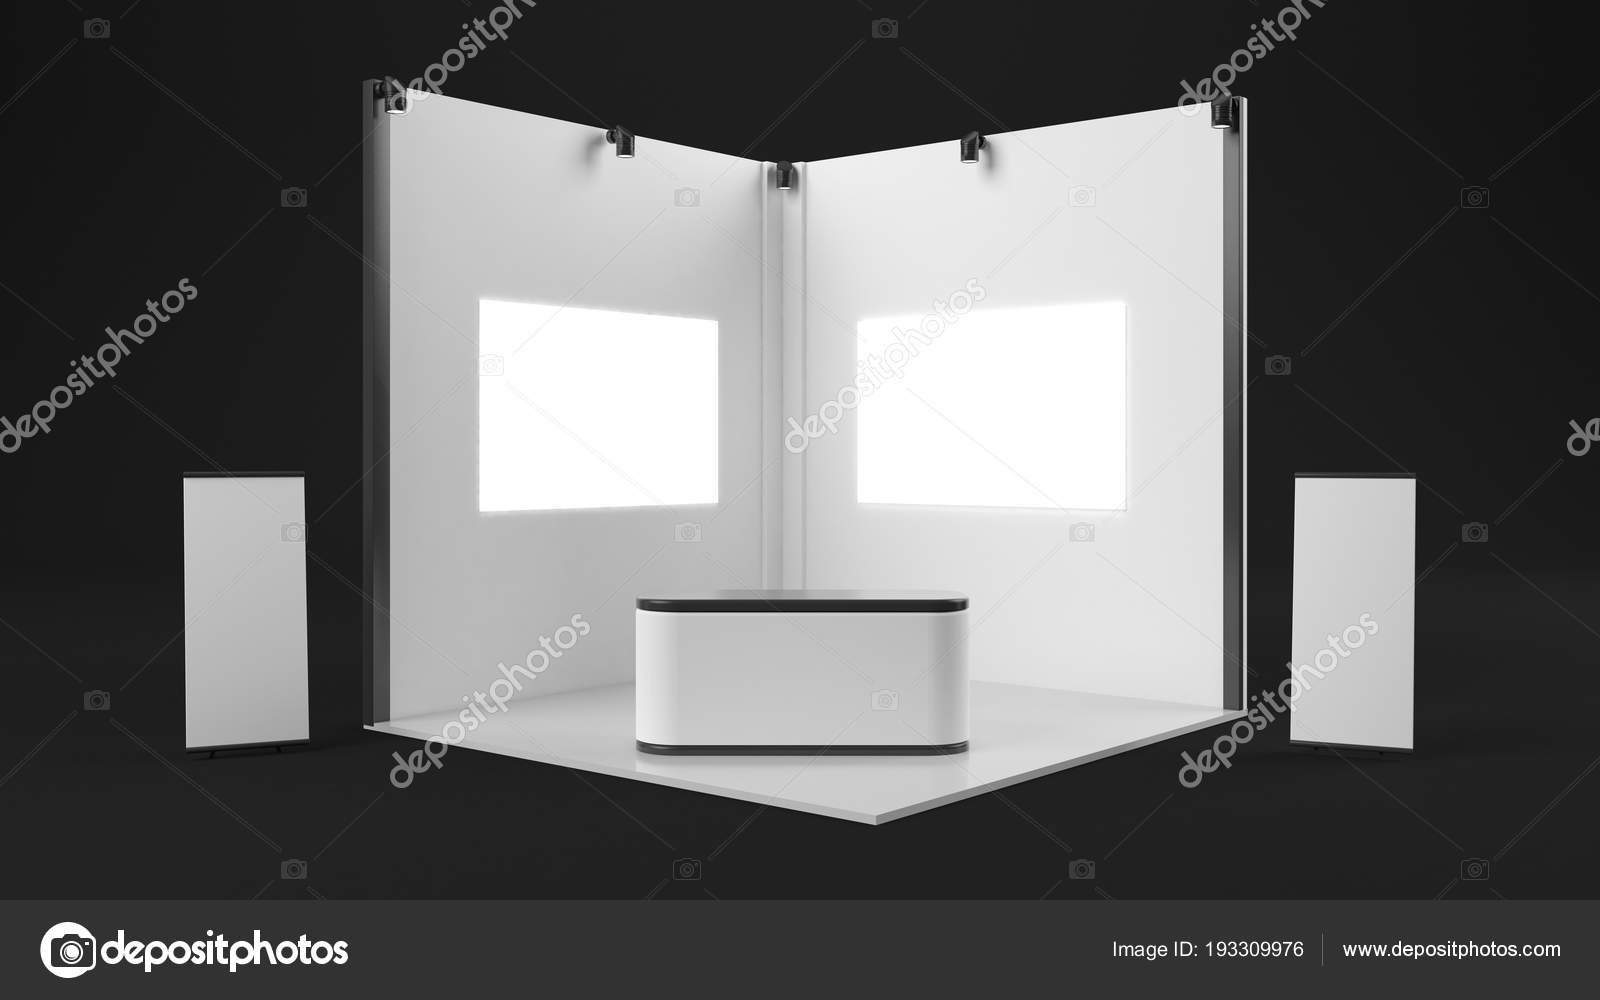 D Exhibition Stand Free Download : 3d rendering of a white exhibition stand with light for differen